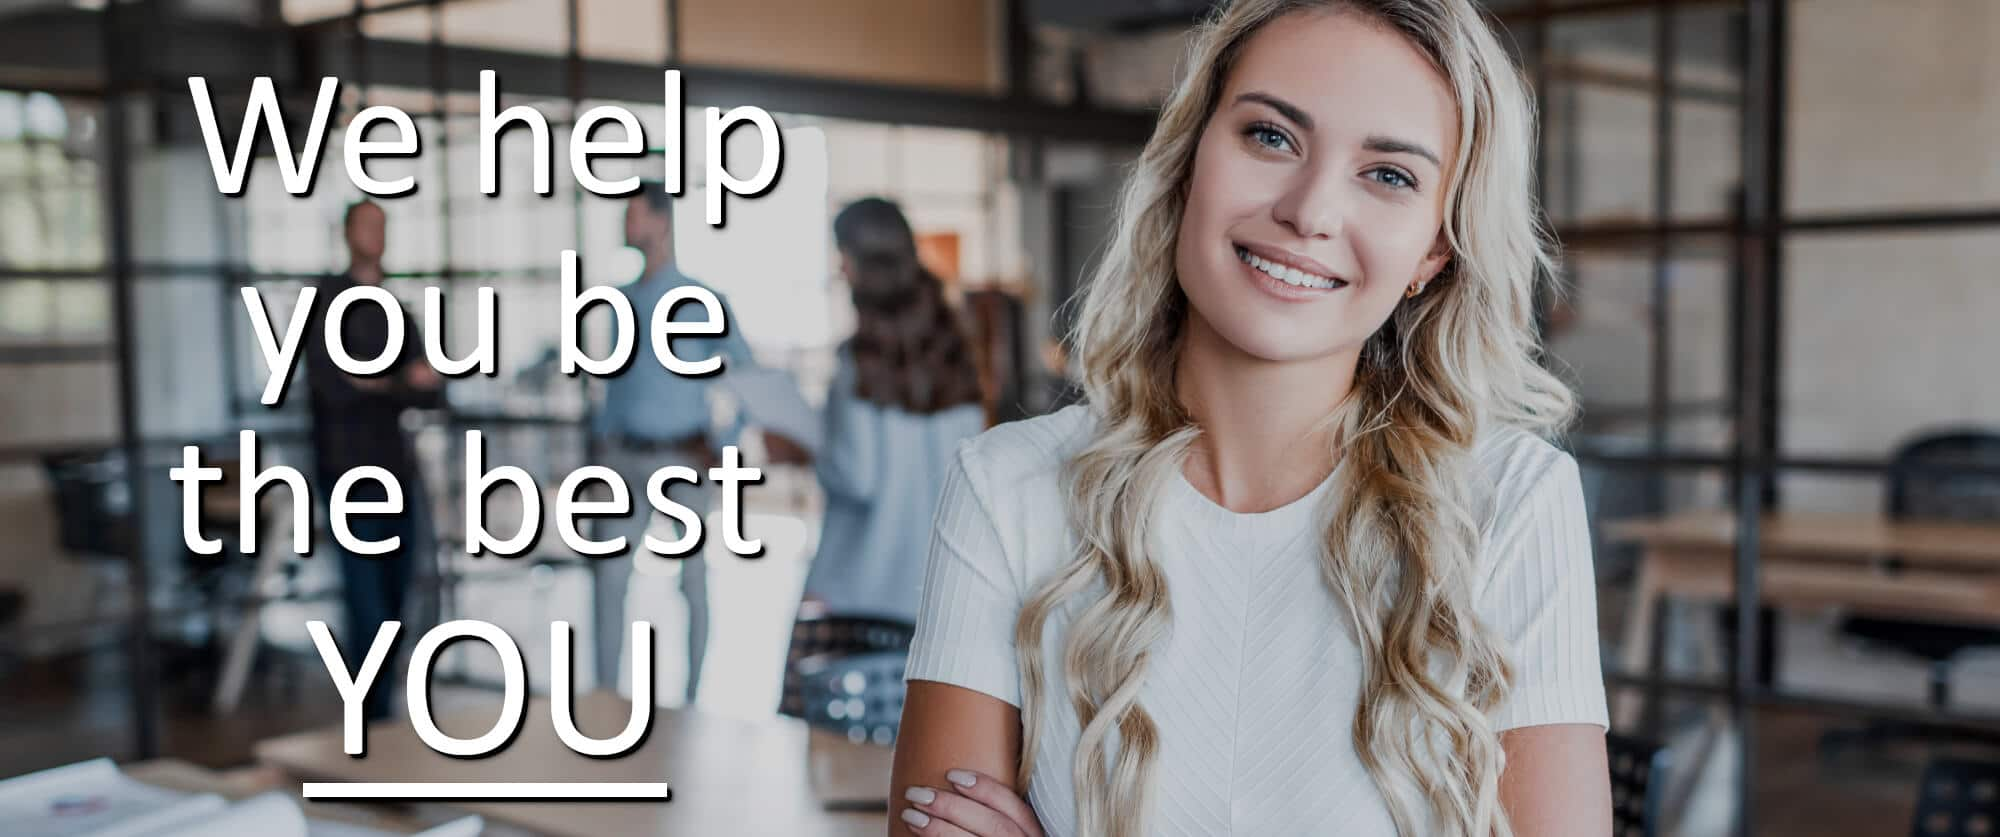 We help you be the best YOU - business woman in office setting